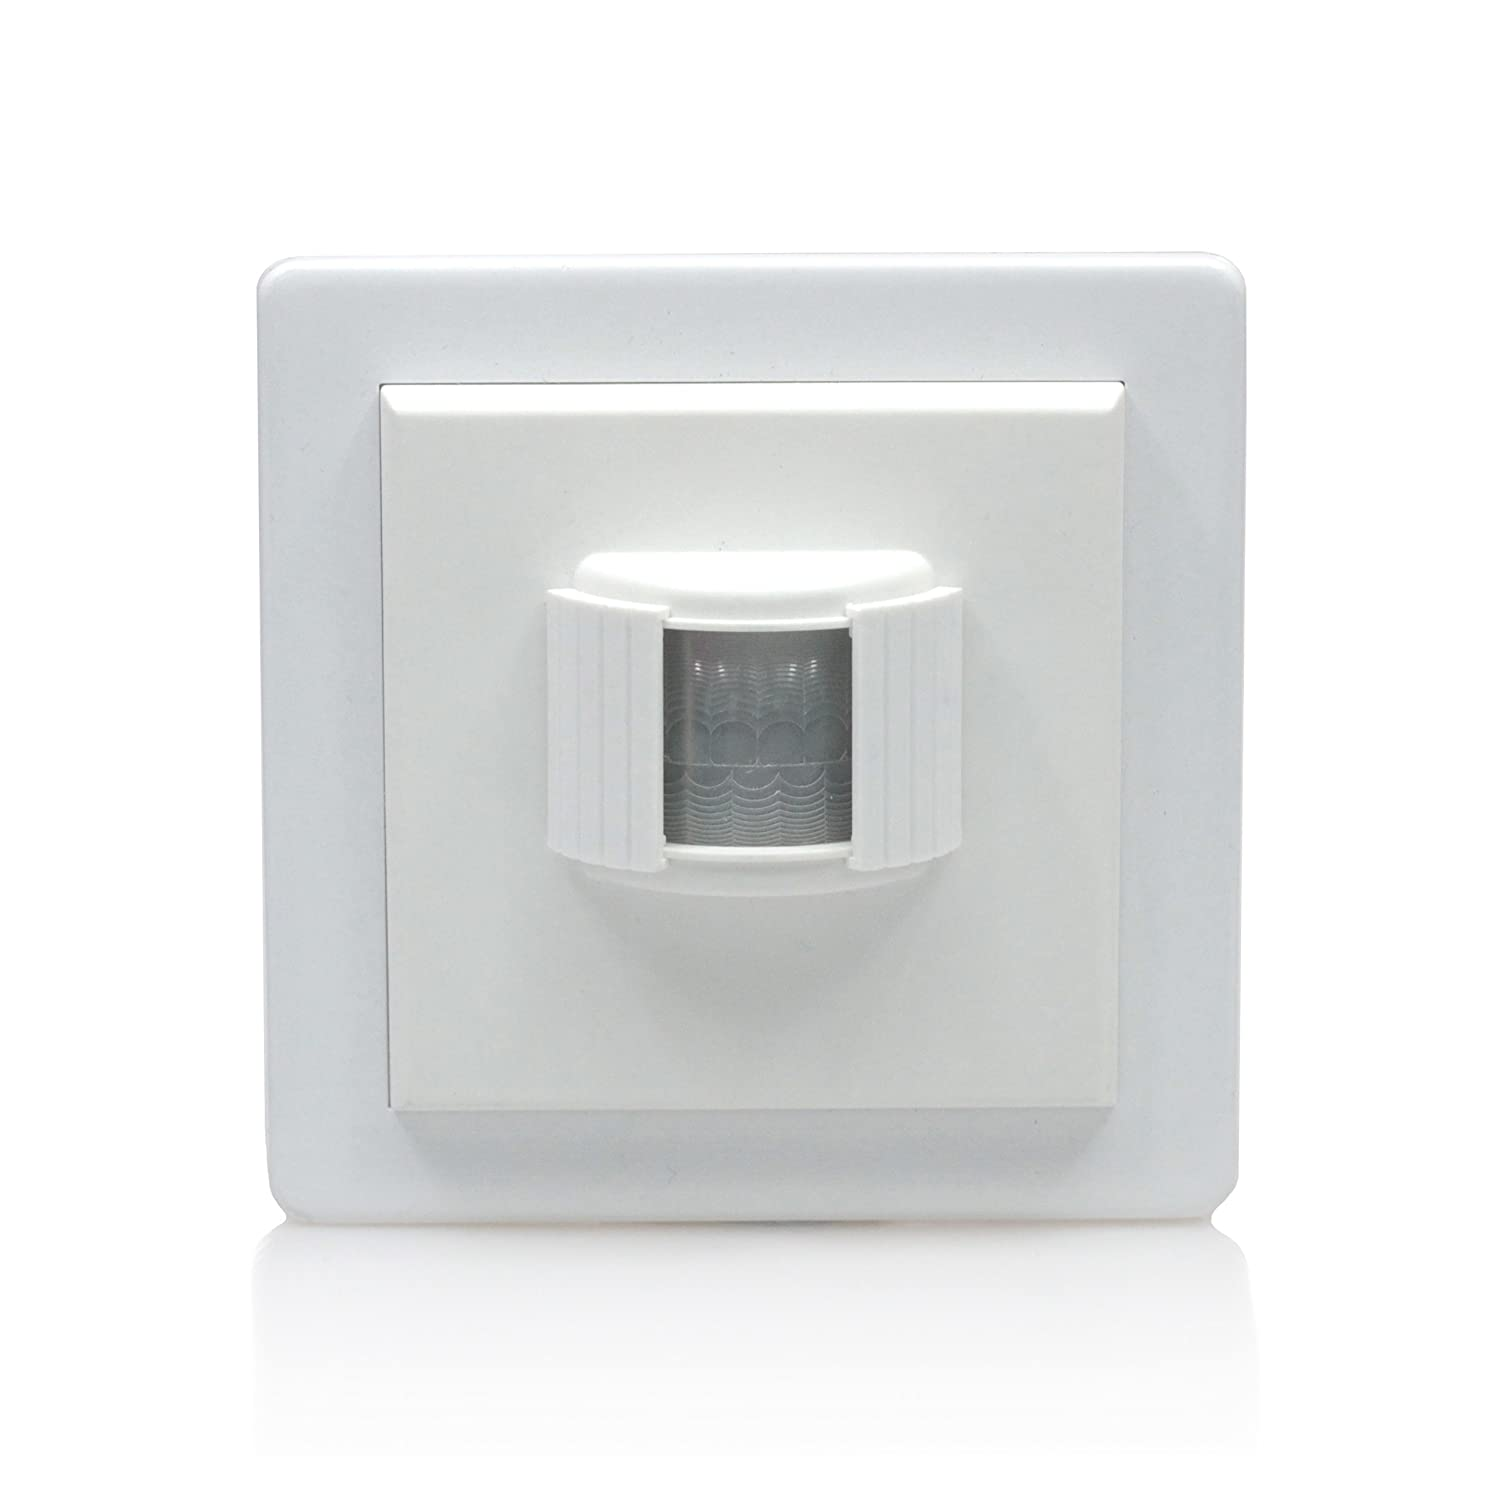 Lightwaverf Pir Motion Detector Wire Free Battery Operated White Automatic Poweroff On Mains Failing Dark And Light Activated Relay Diy Tools